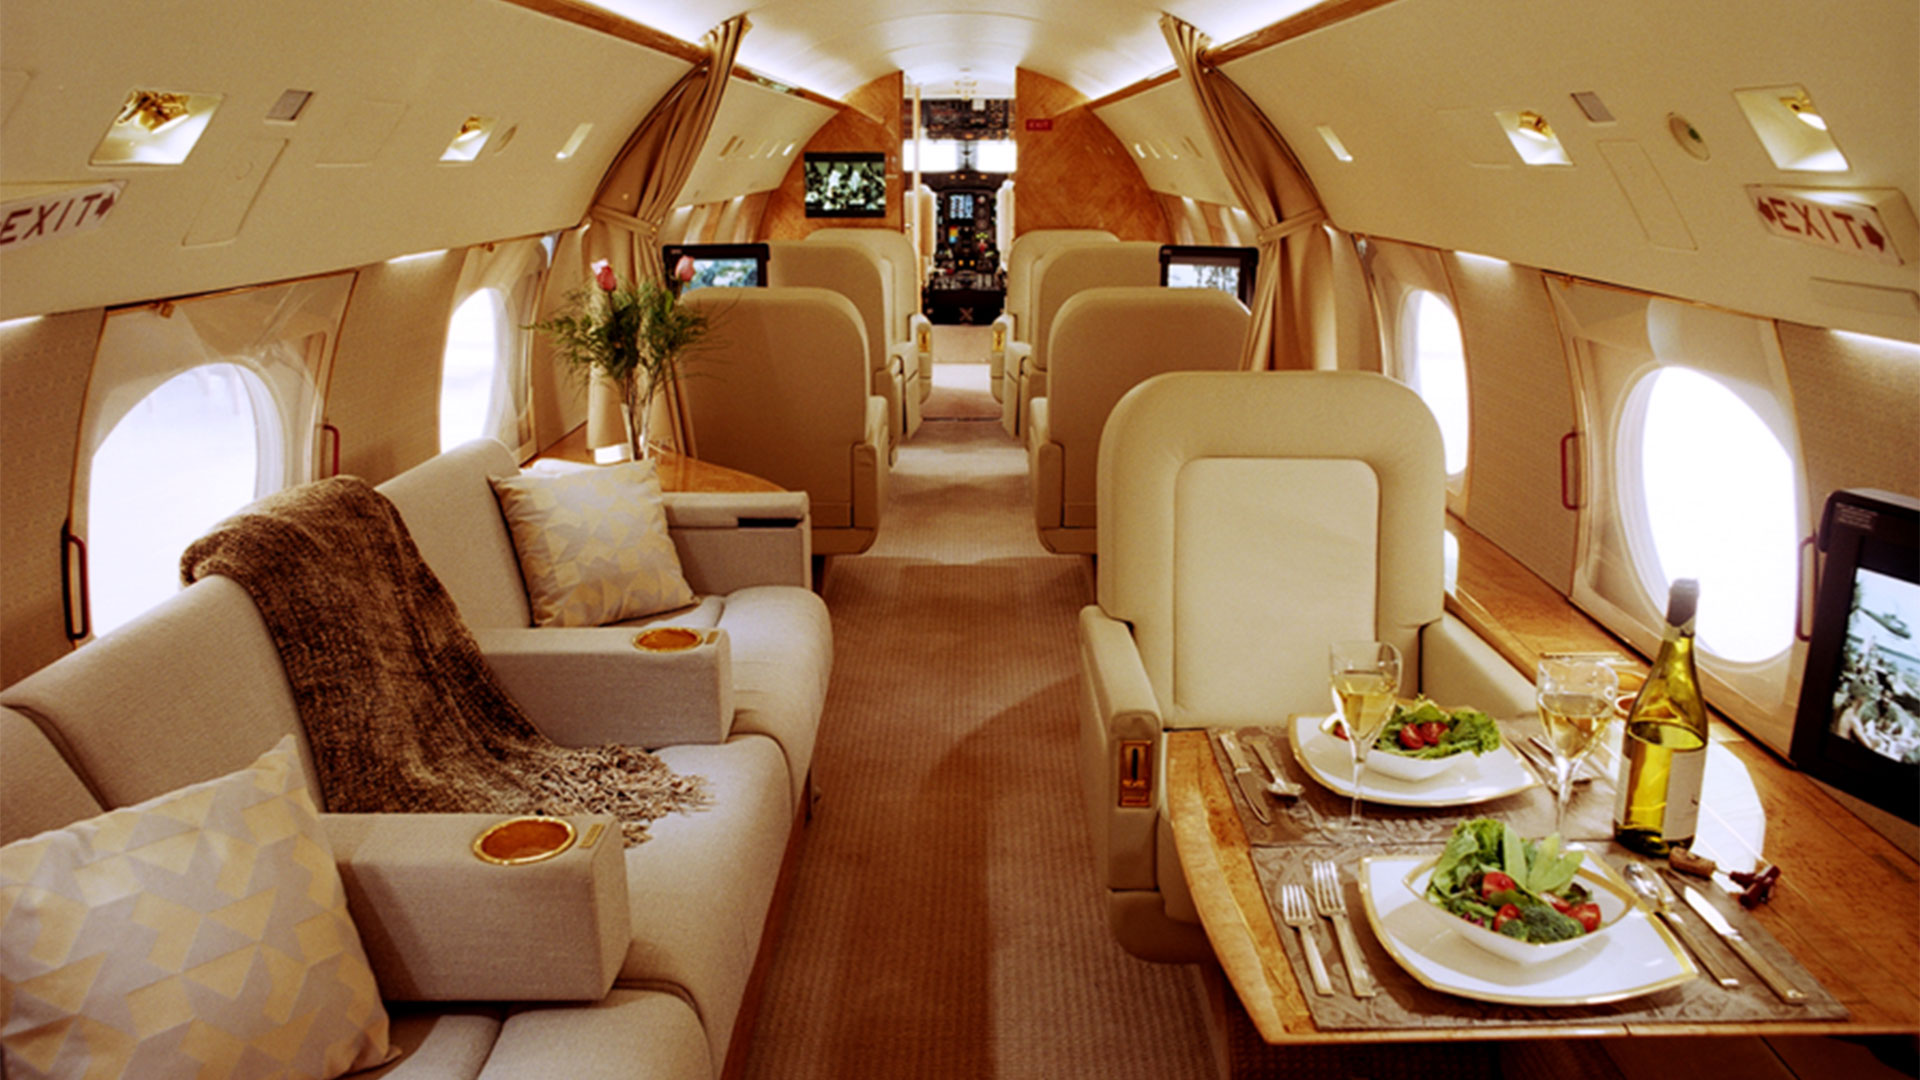 Cabin interior of a business jet